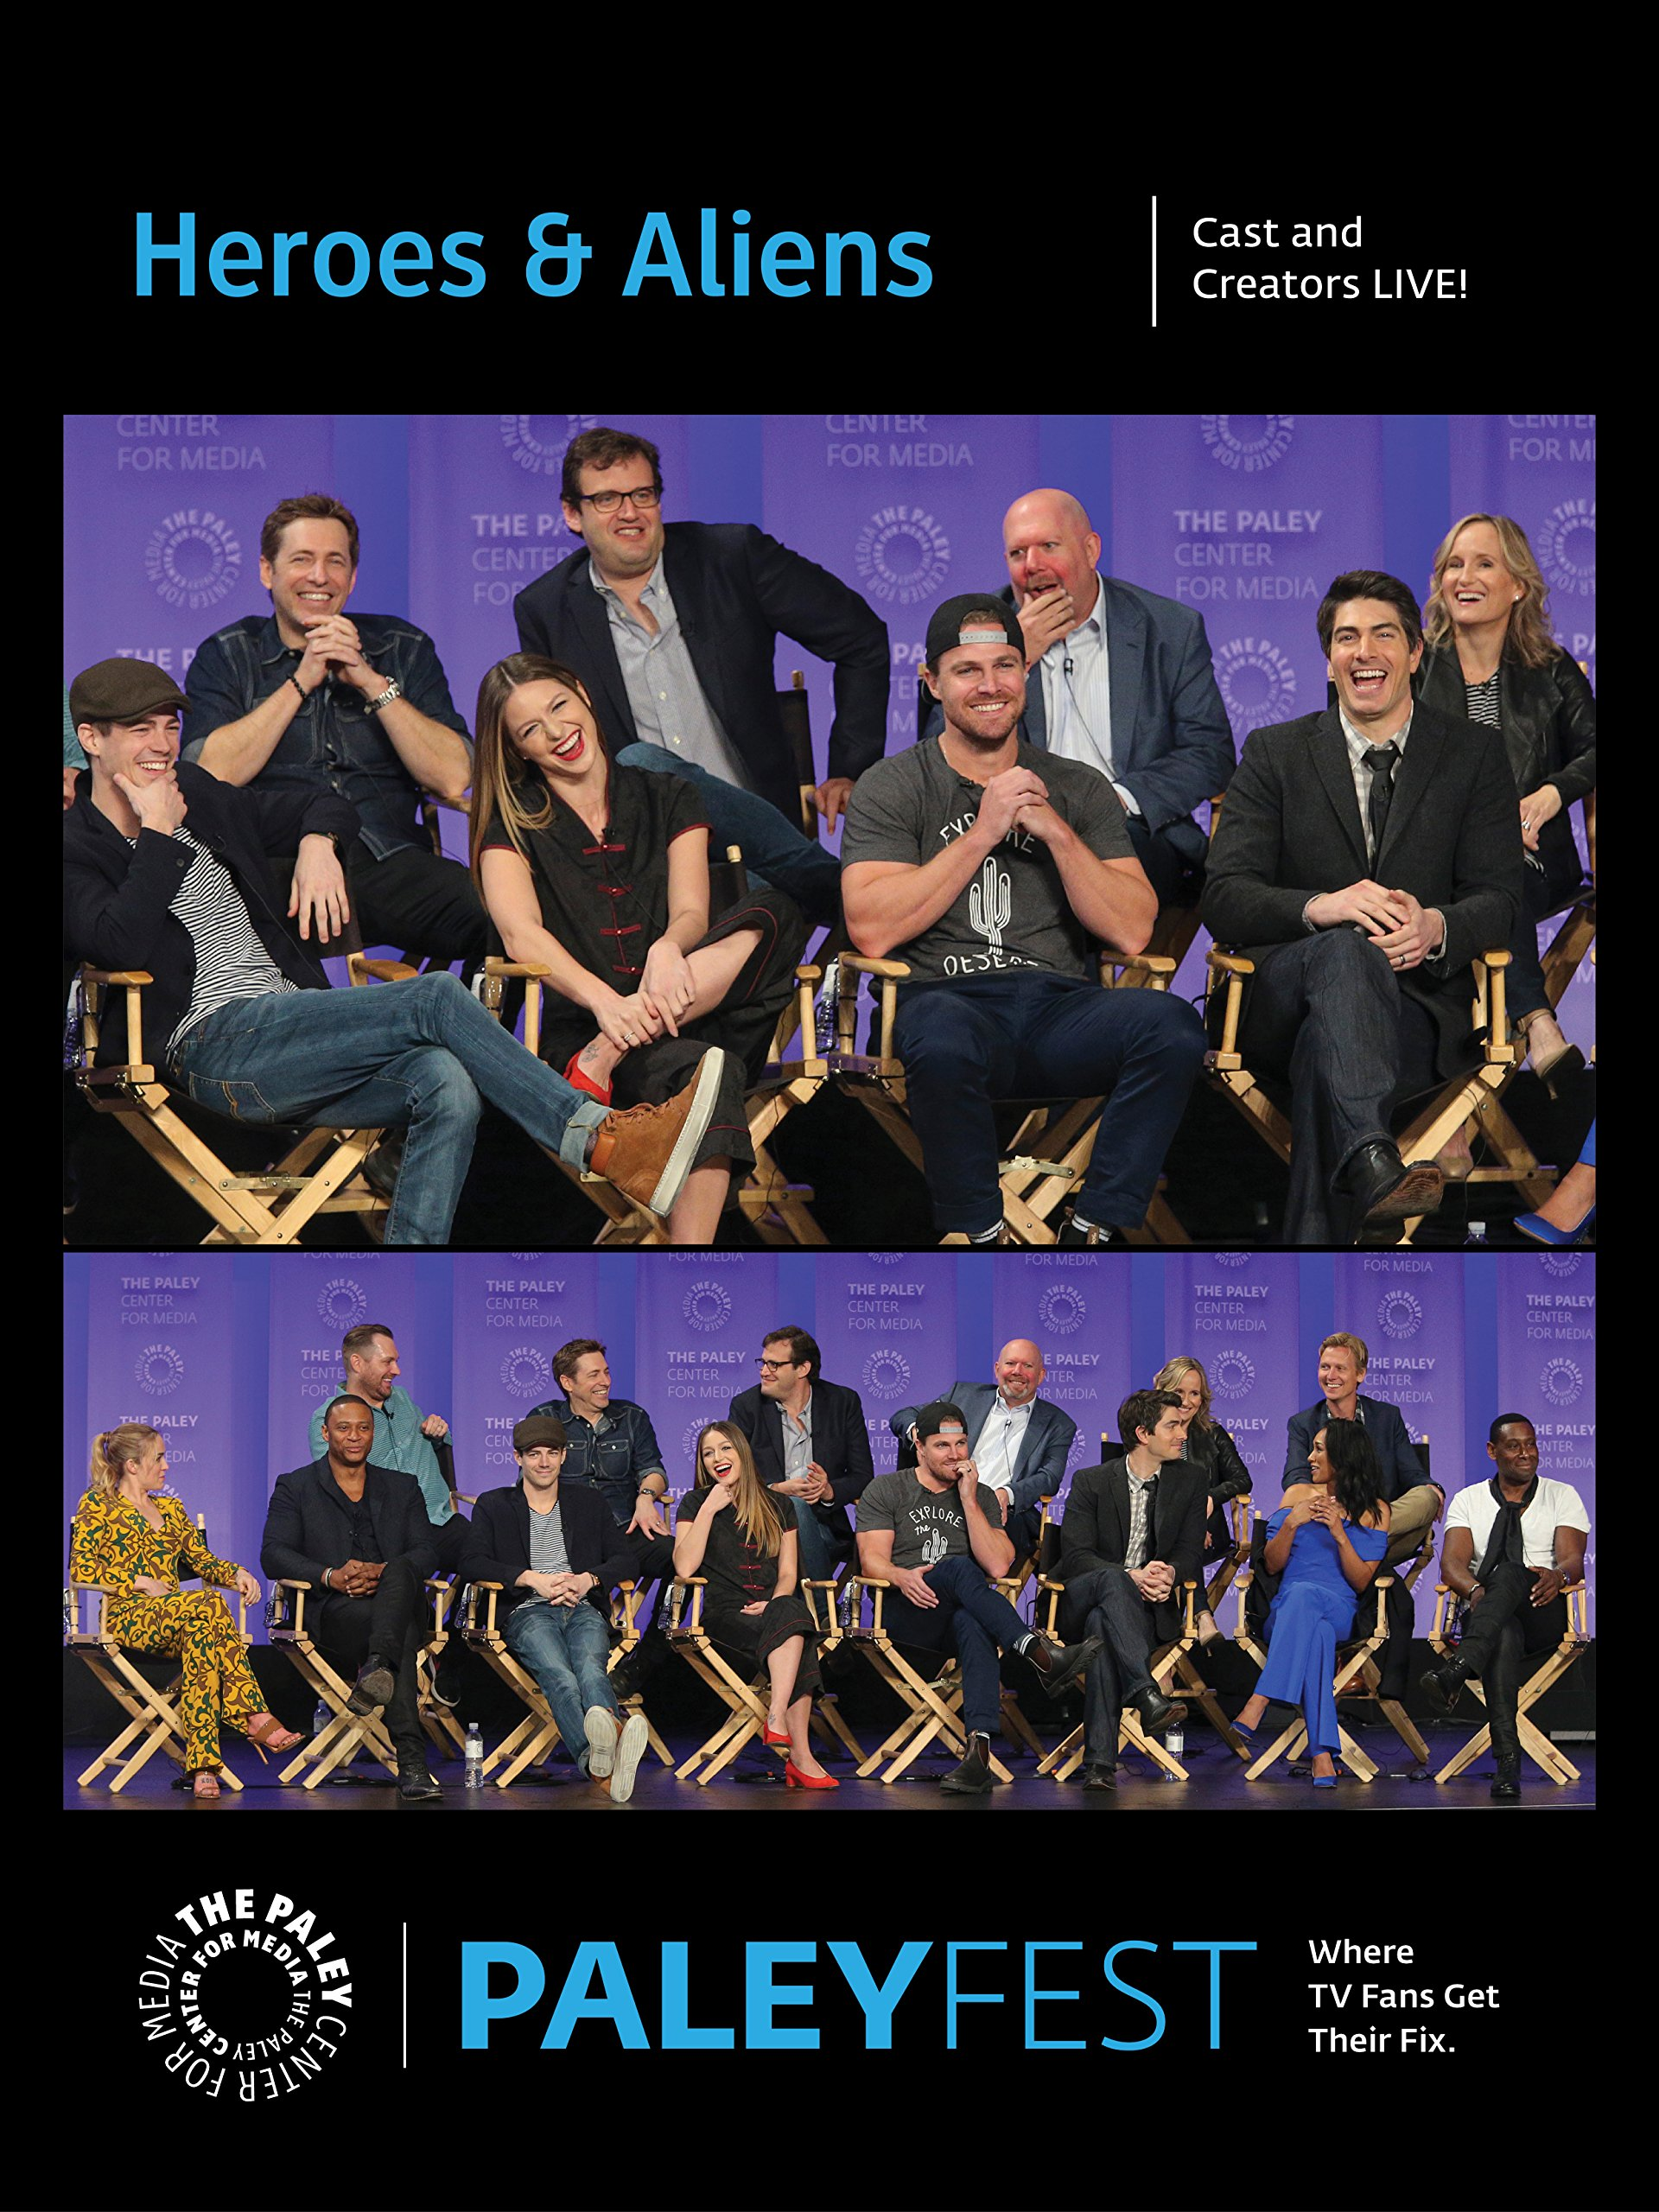 Heroes & Aliens: Cast and Creators PaleyFest